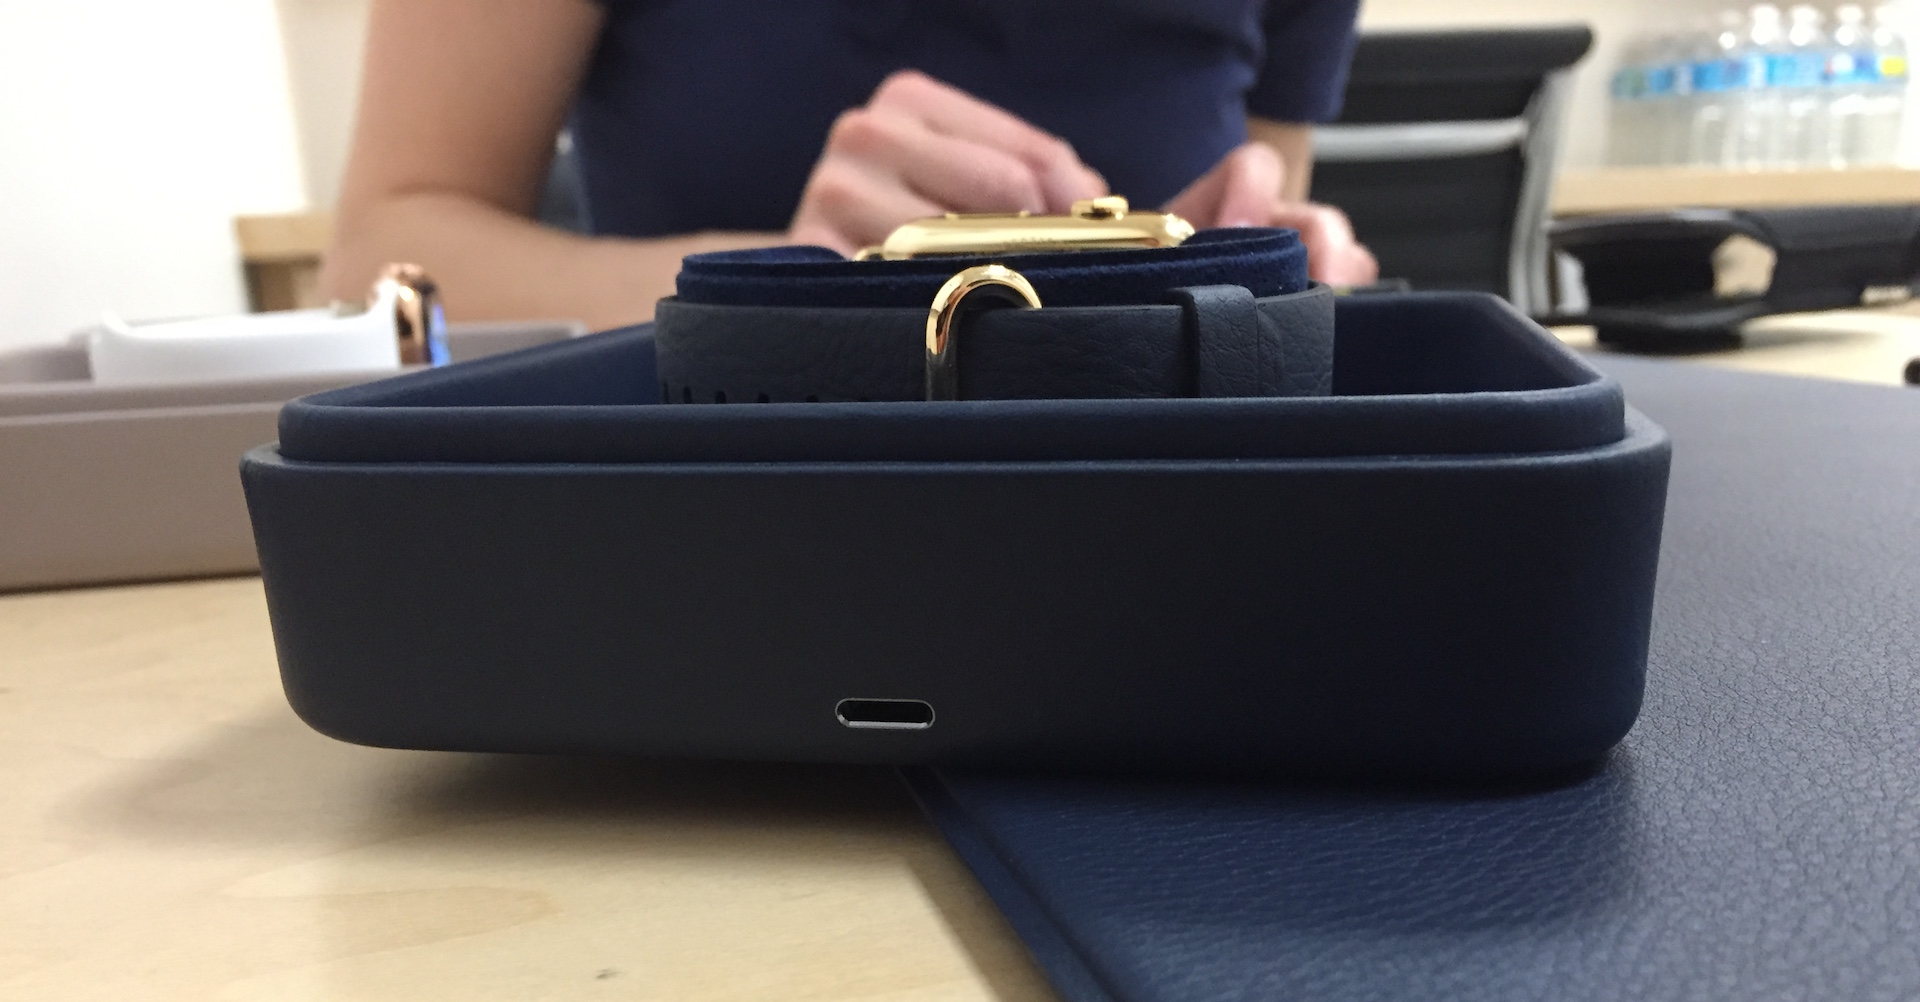 You use a Lightning port on the back of the case to plug the watch in.